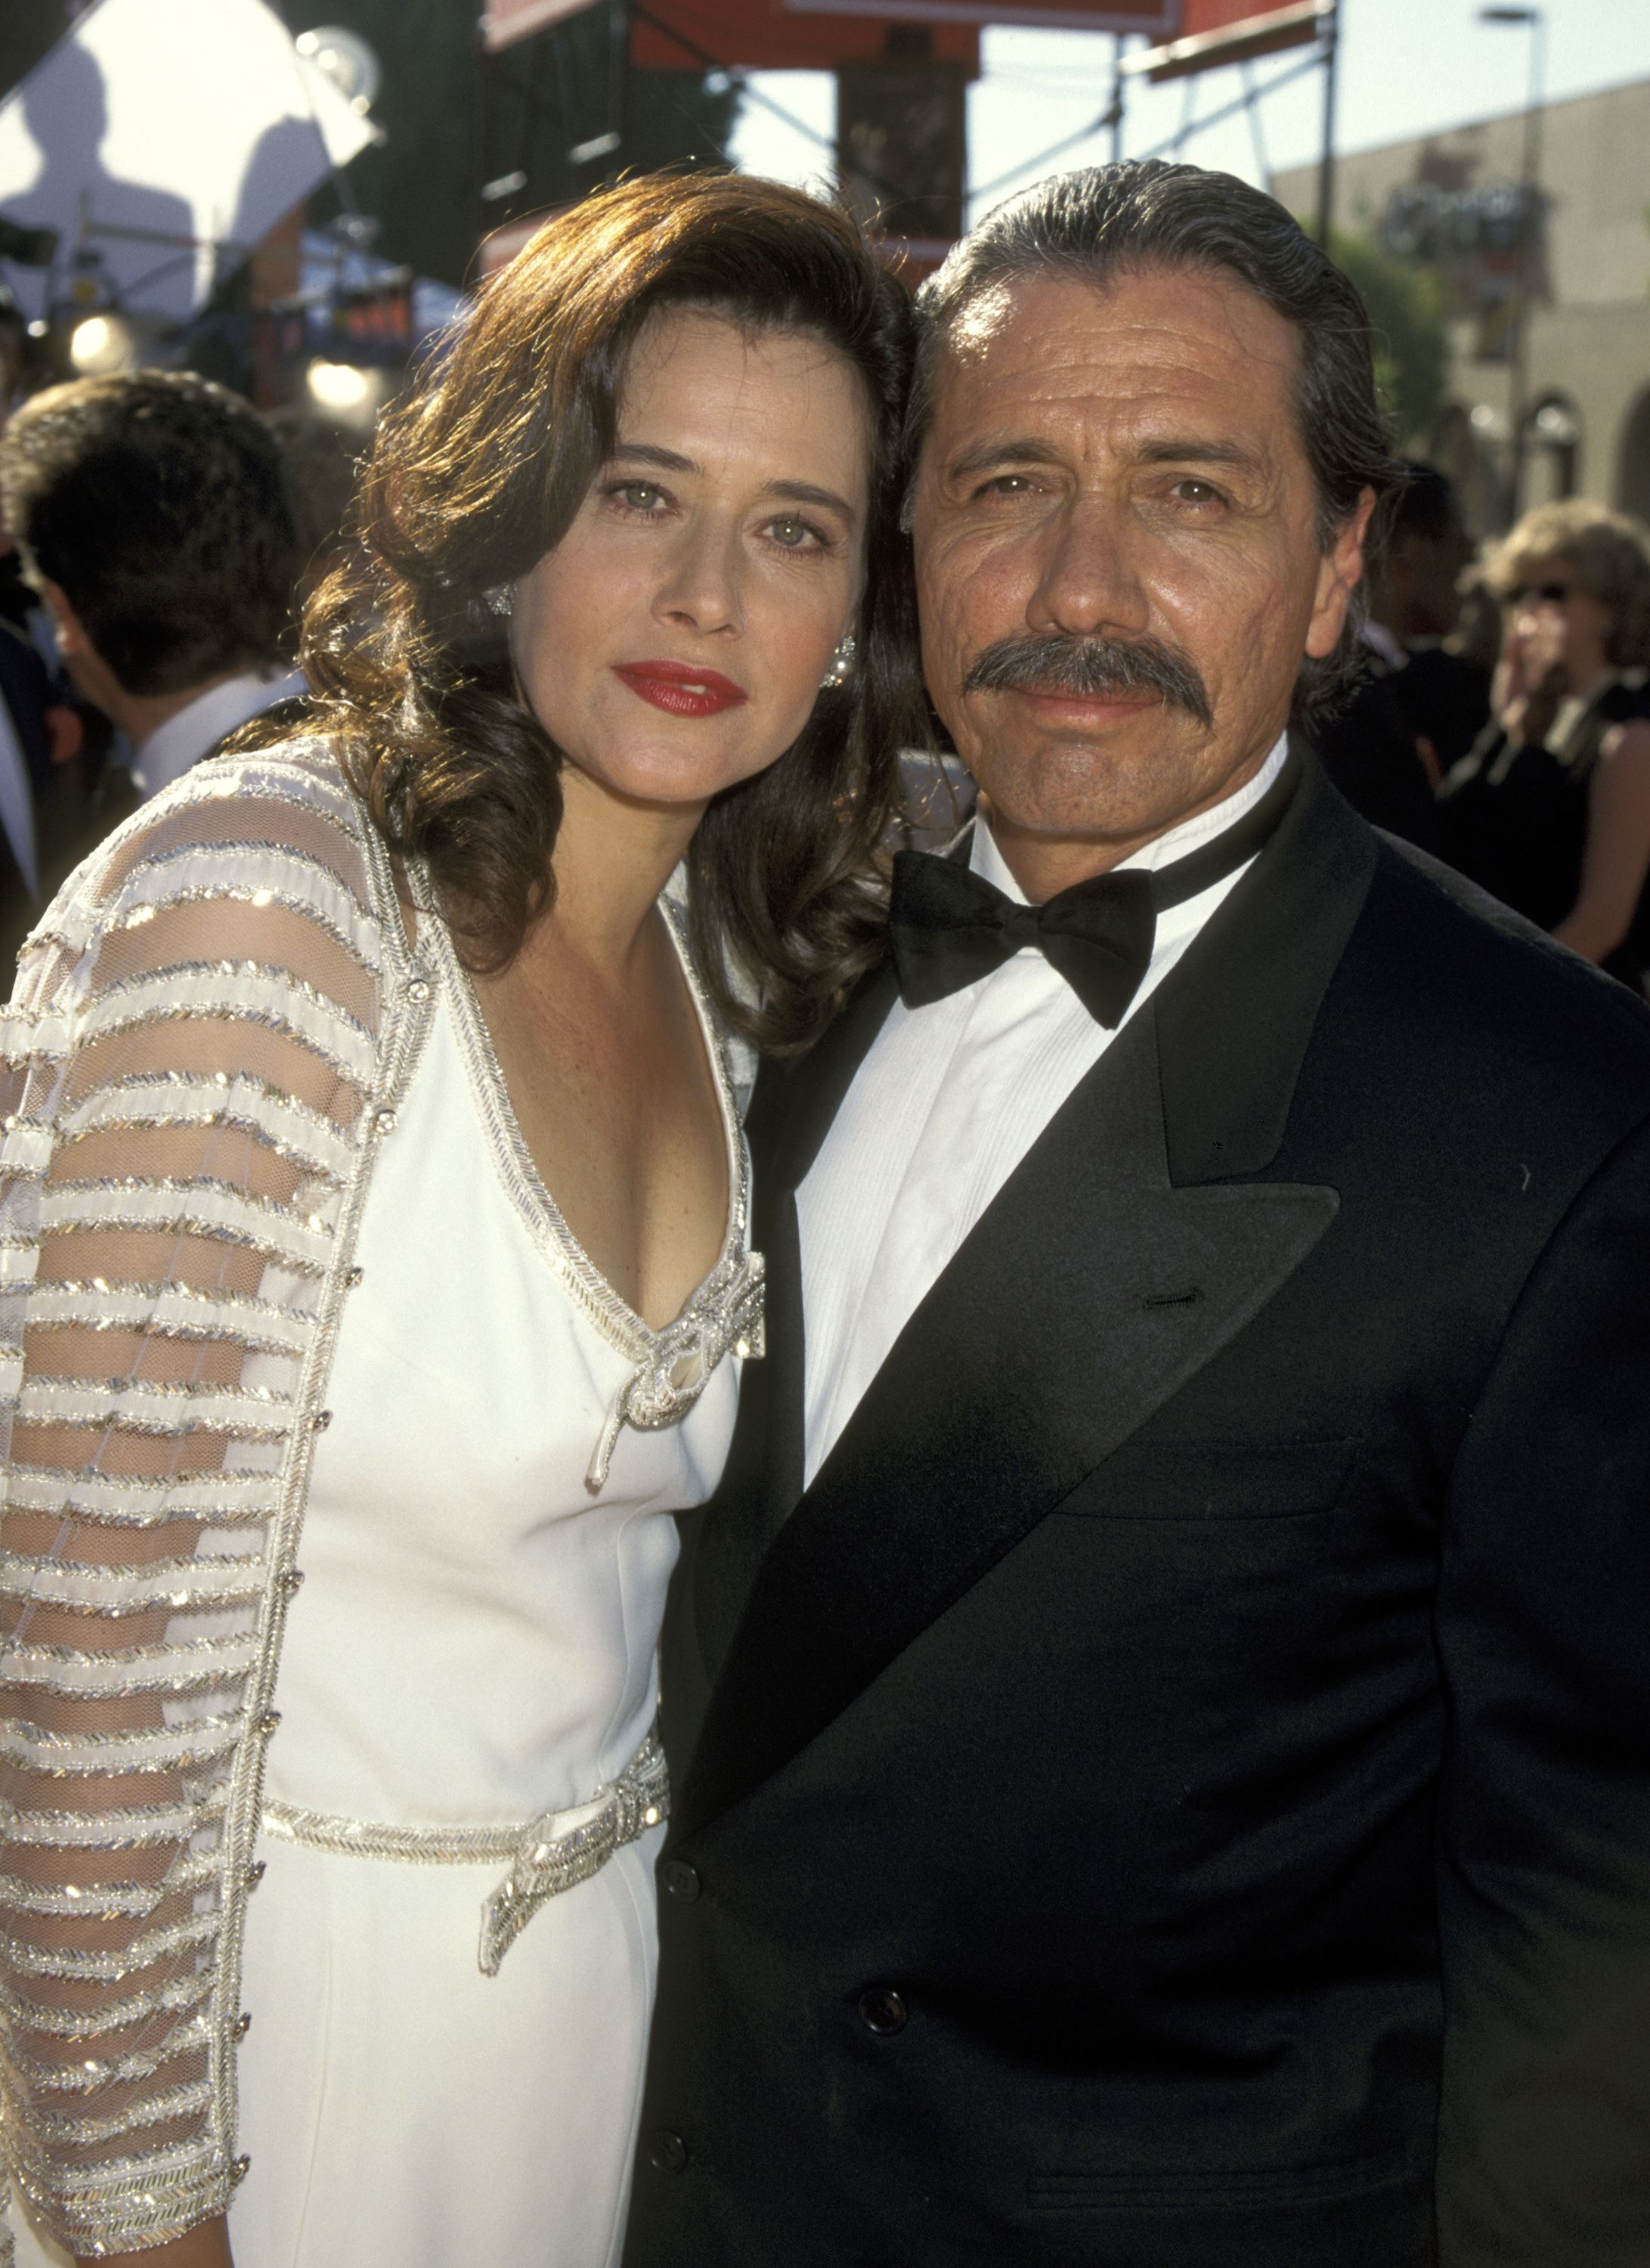 Lorraine Bracco and Edward James Olmos at the 47th Annual Primetime Emmy Awards in 1995 in Pasadena   Source: Getty Images